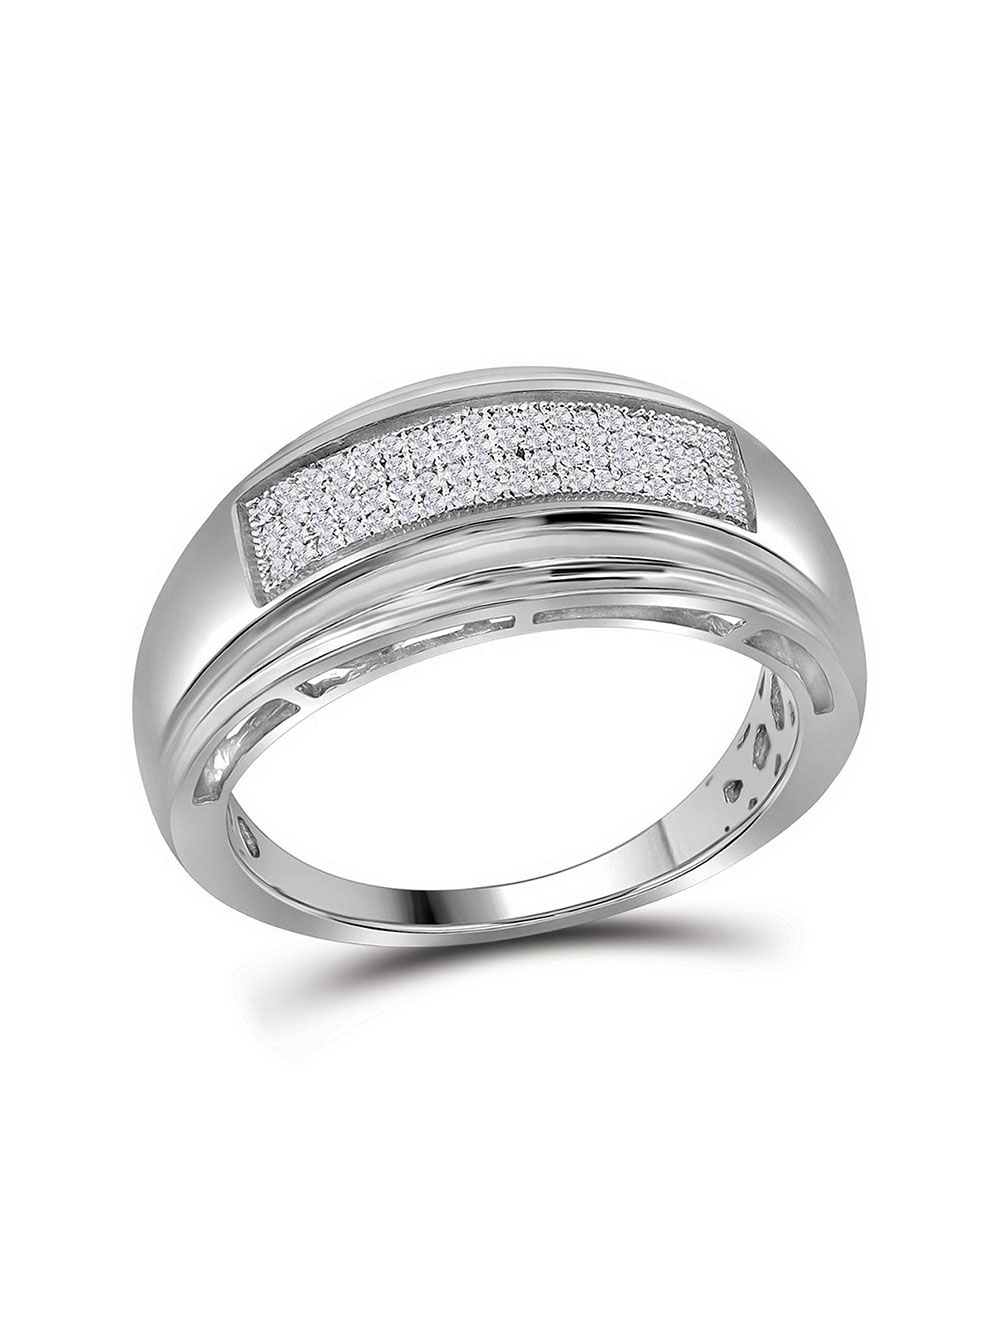 FB Jewels 925 Sterling Silver Micro Pave Cubic Zirconia CZ Mens Wedding Ring Band